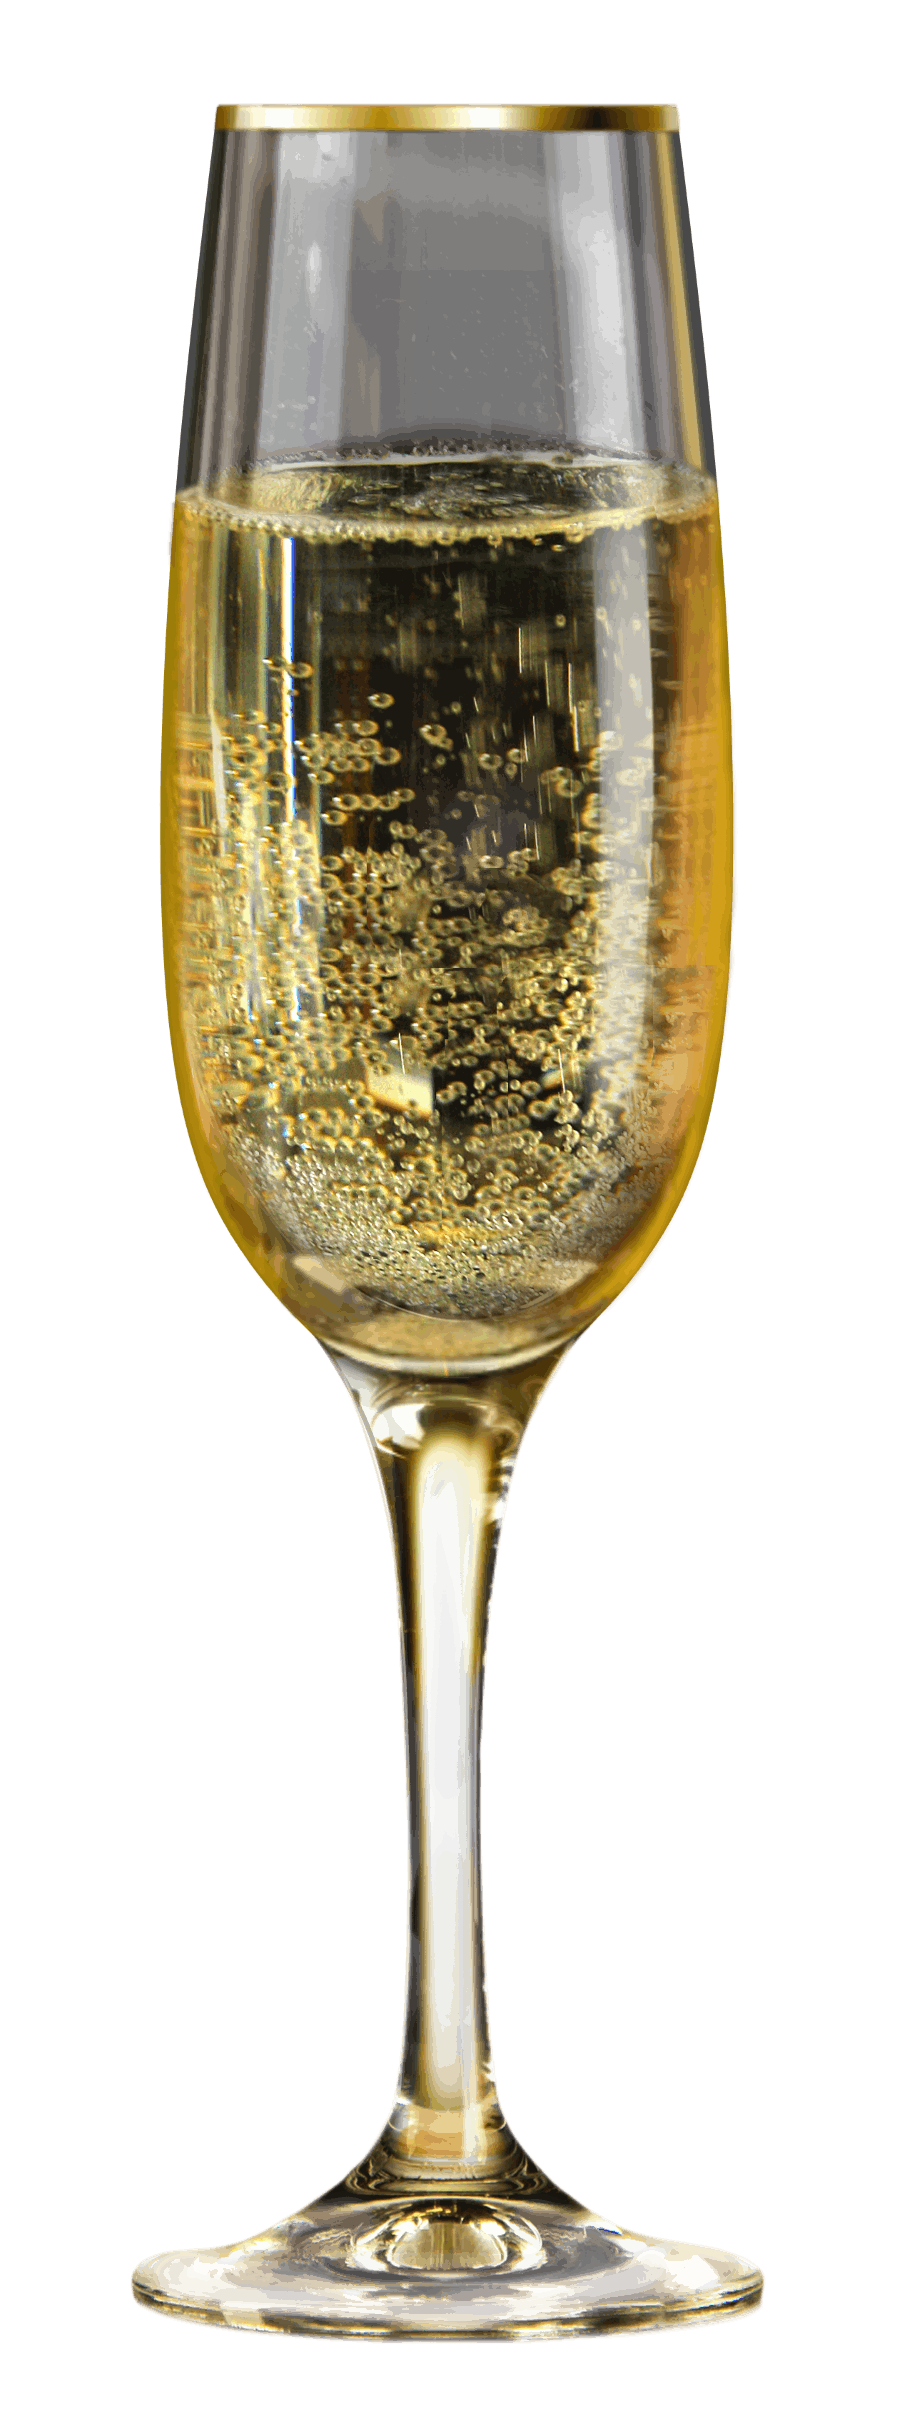 Free stock photo of glass, decoration, champagne, gold